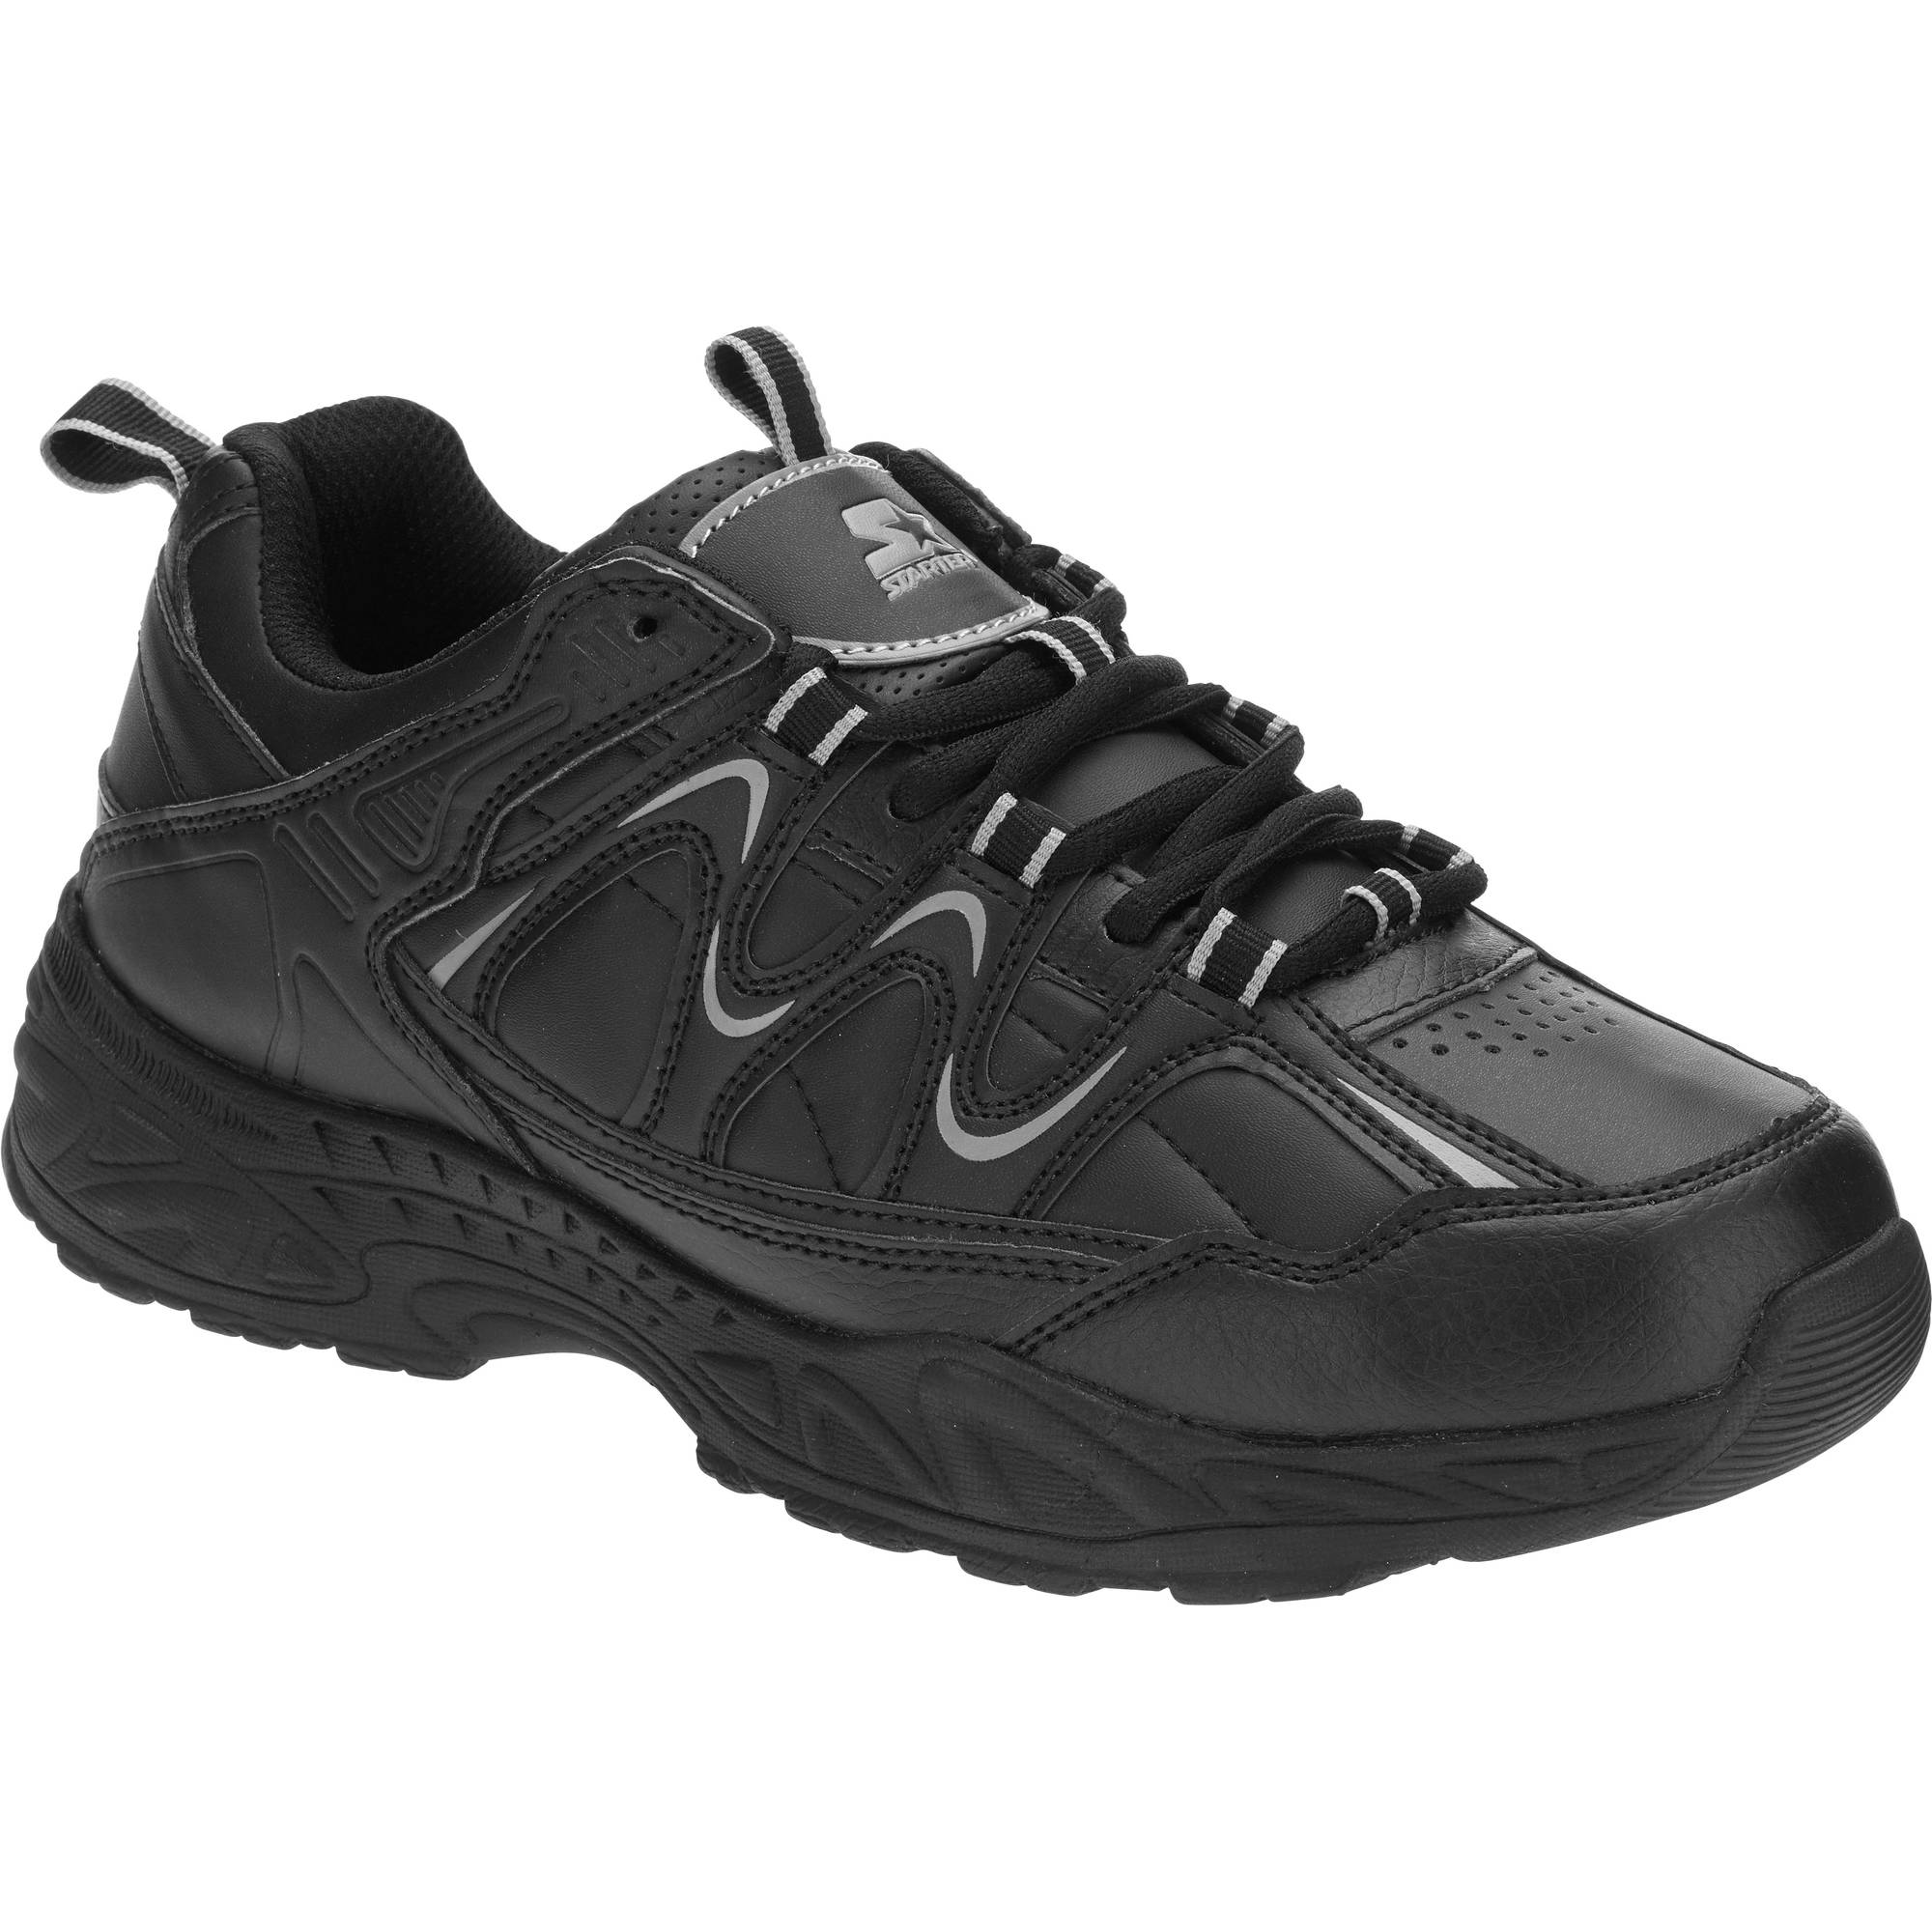 Starter Men's Wide Width Athletic Shoe